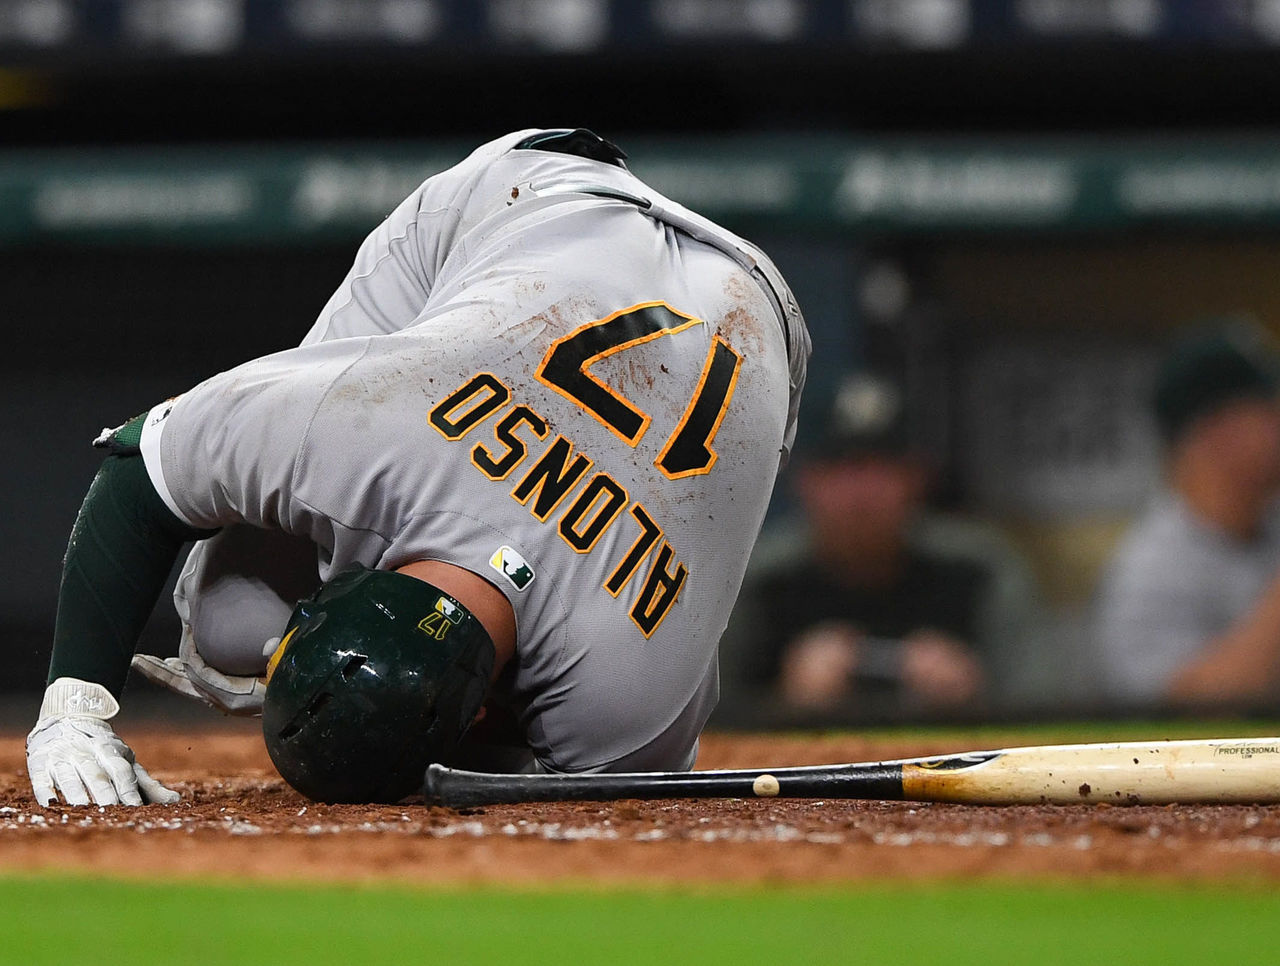 Cropped 2017 06 29t034749z 1369105048 nocid rtrmadp 3 mlb oakland athletics at houston astros